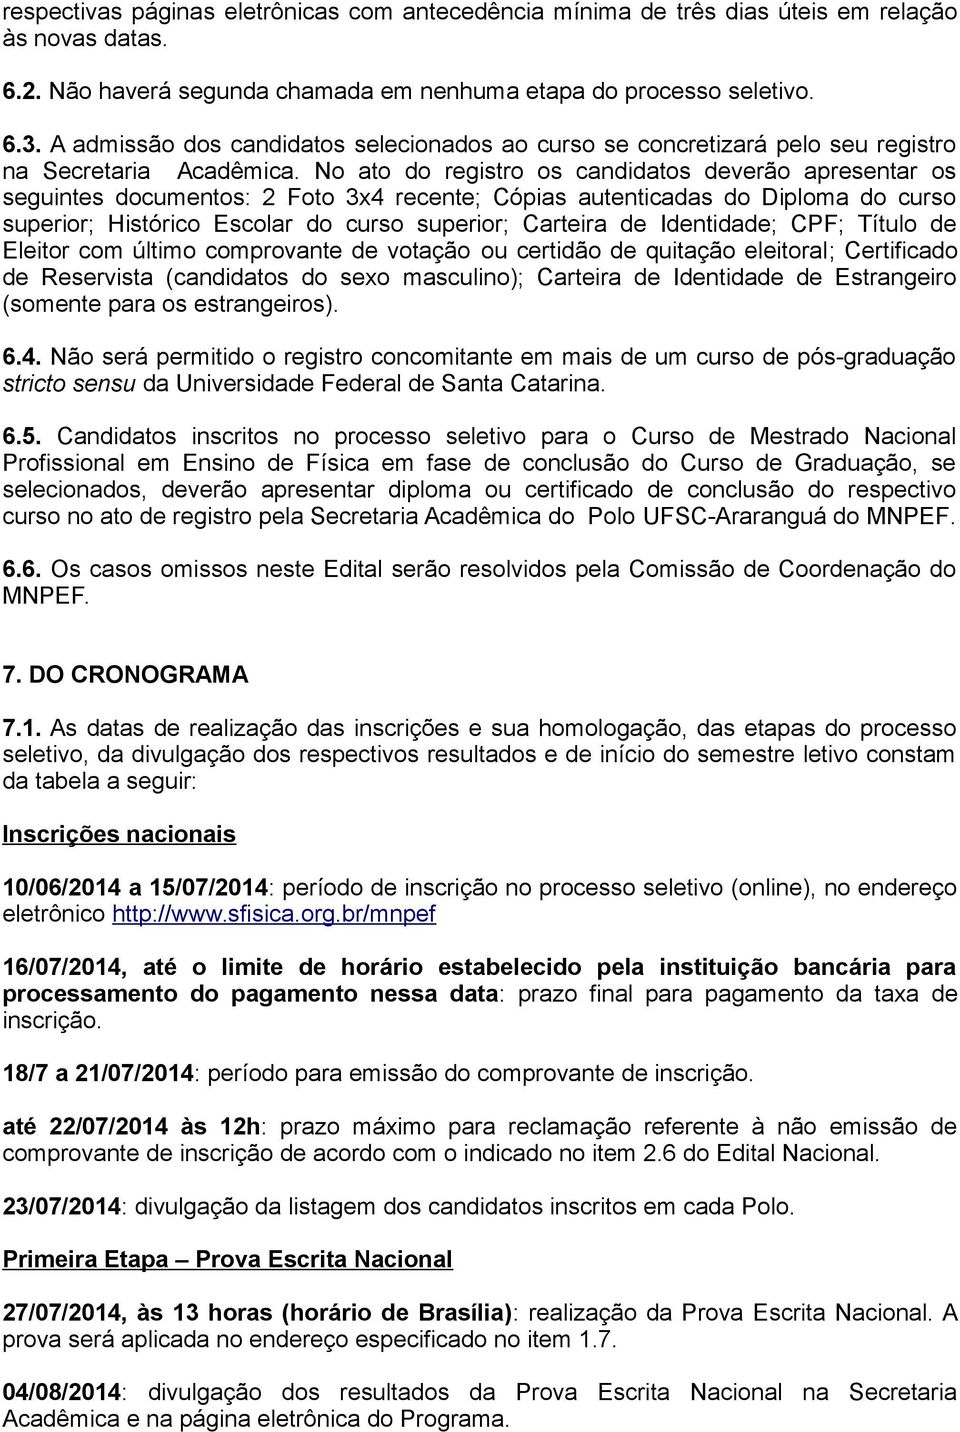 No ato do registro os candidatos deverão apresentar os seguintes documentos: 2 Foto 3x4 recente; Cópias autenticadas do Diploma do curso superior; Histórico Escolar do curso superior; Carteira de